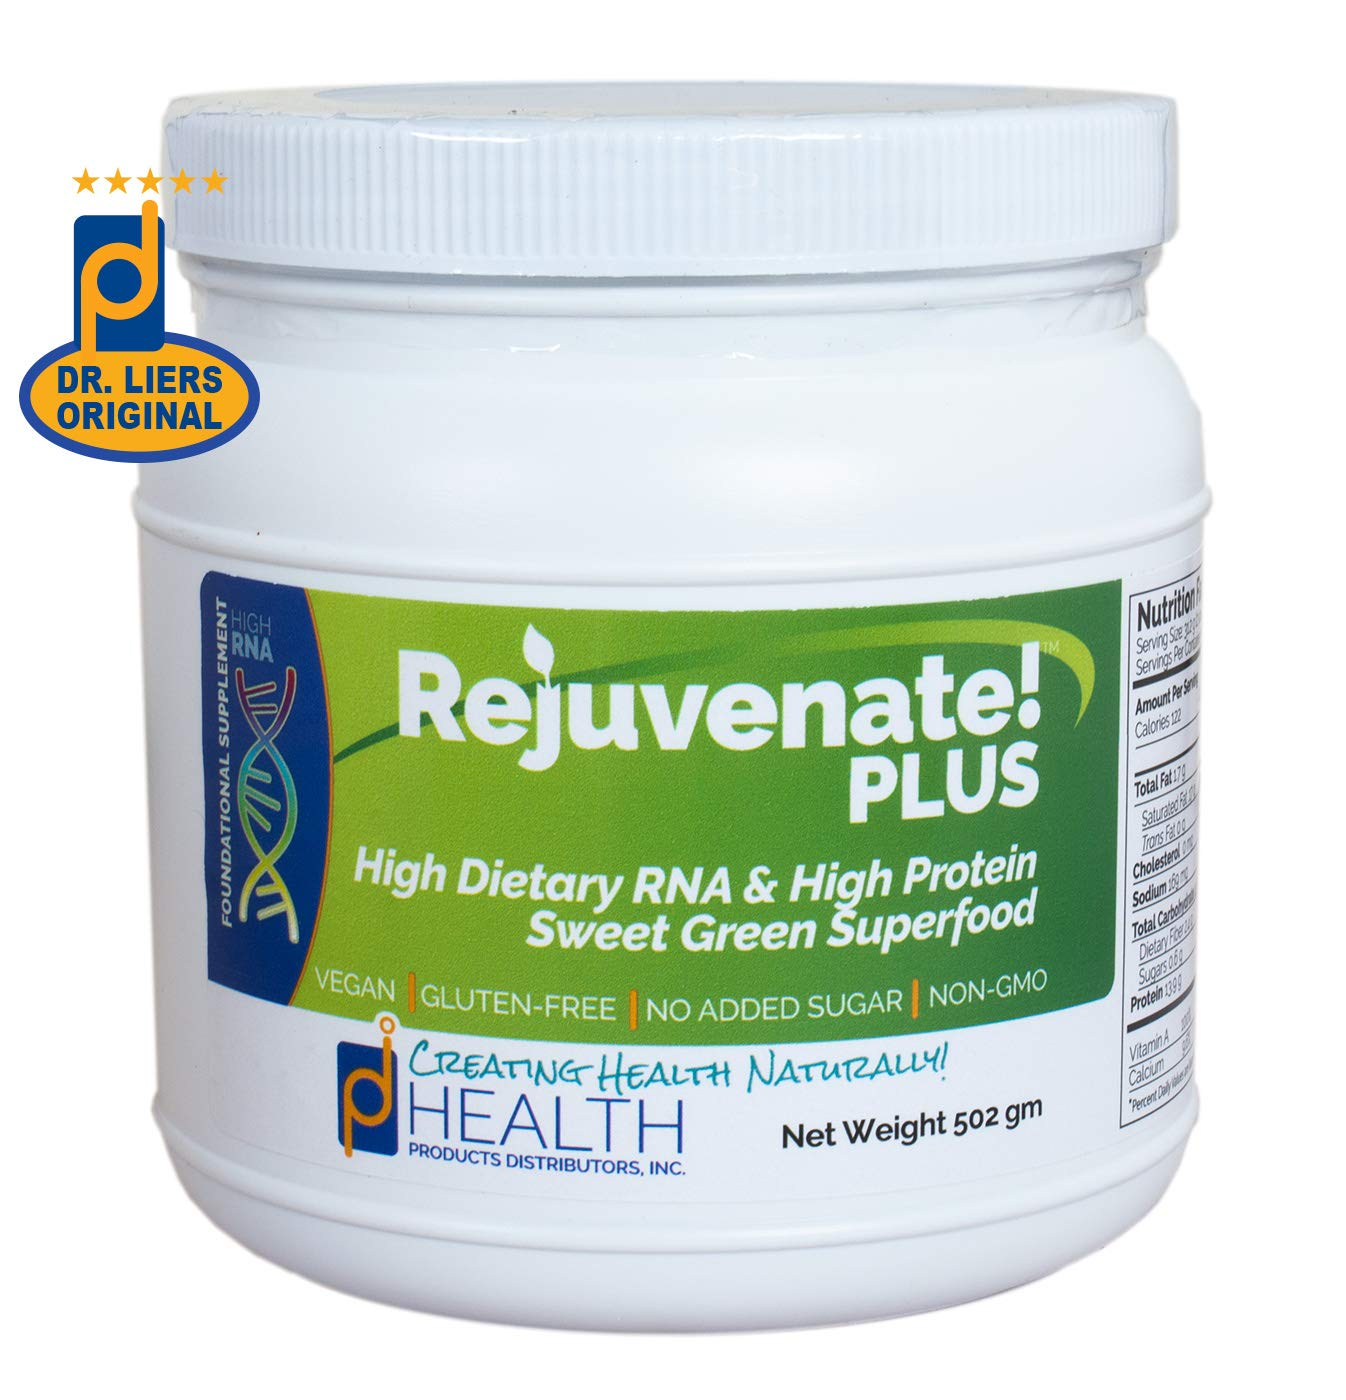 REJUVENATE! Plus (500 gm) - Sweet Green, High-RNA Superfood - High Levels of Dietary Nucleic Acids, Chlorella, Spirulina, Quality Protein | Built-in Multivitamin-Multimineral Complex | D-Ribose by Health Products Distributors, Inc.